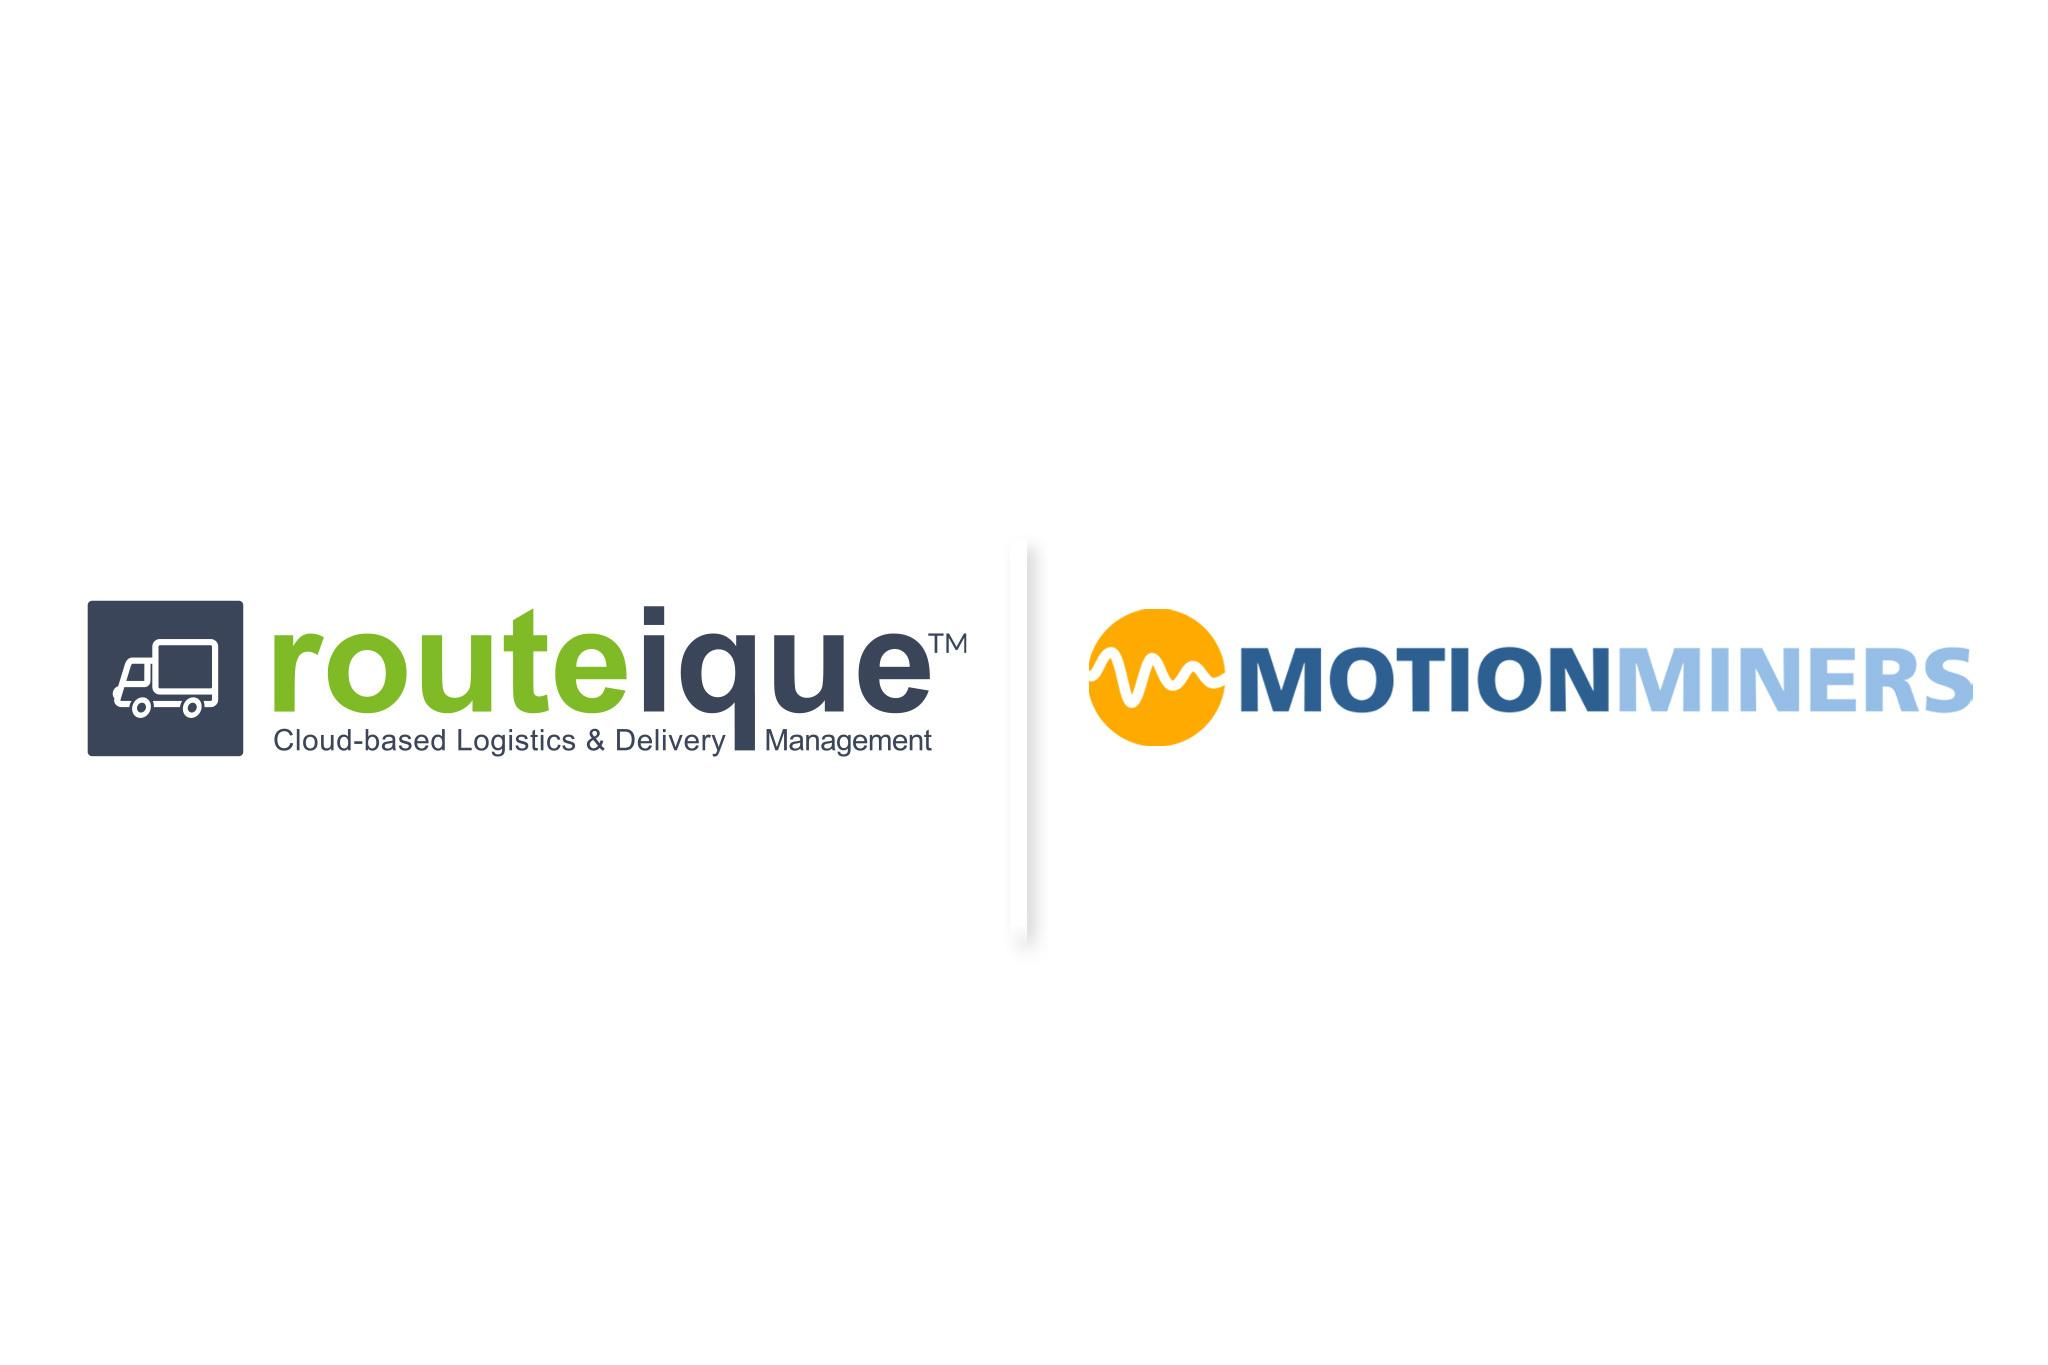 Routeique™ and MotionMiners Announce Partnership